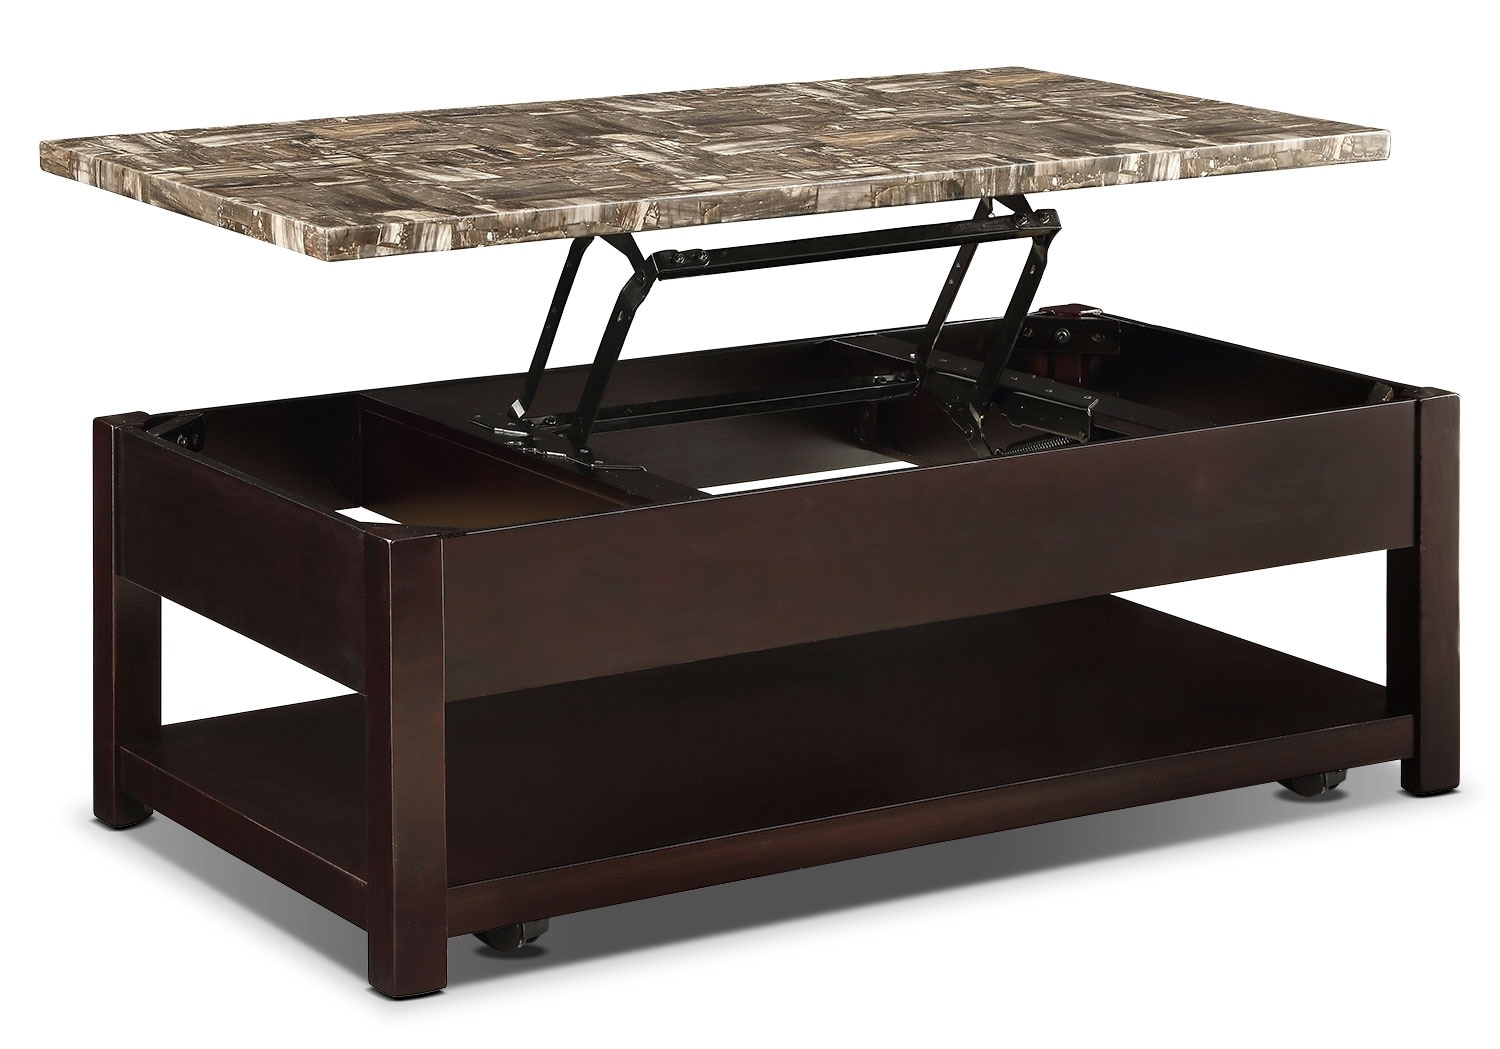 Accent and Occasional Furniture - Sicily Coffee Table with Lift-Top and Casters – Brown